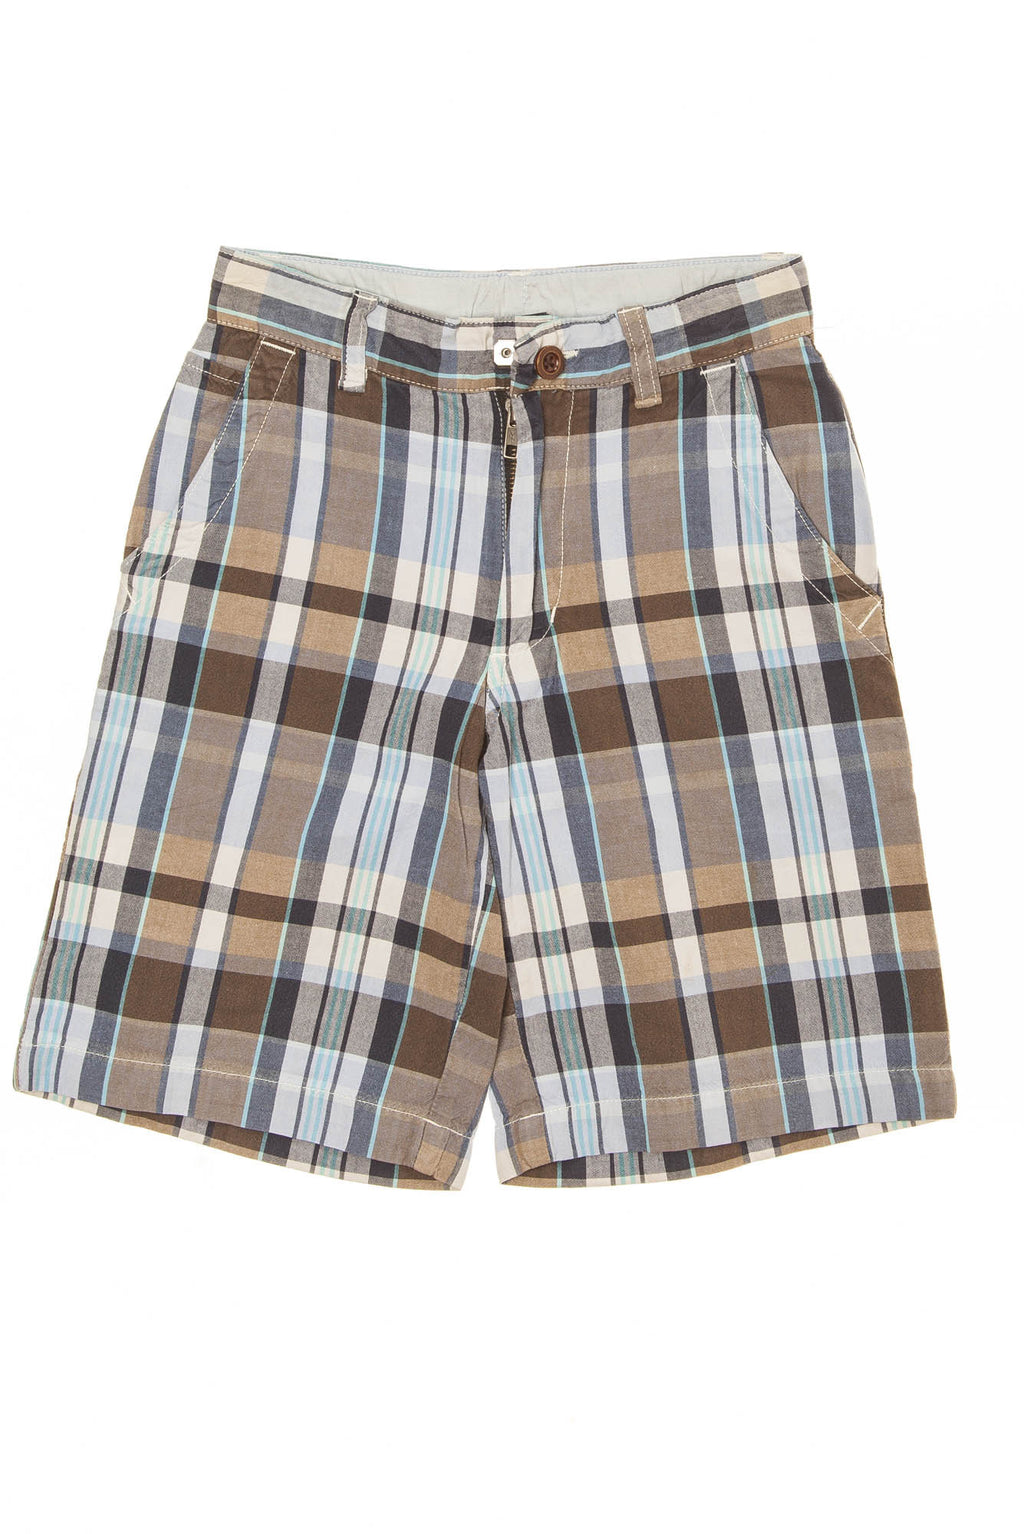 GapKids - Light Brown and Blue Plaid Shorts - 8 Slim